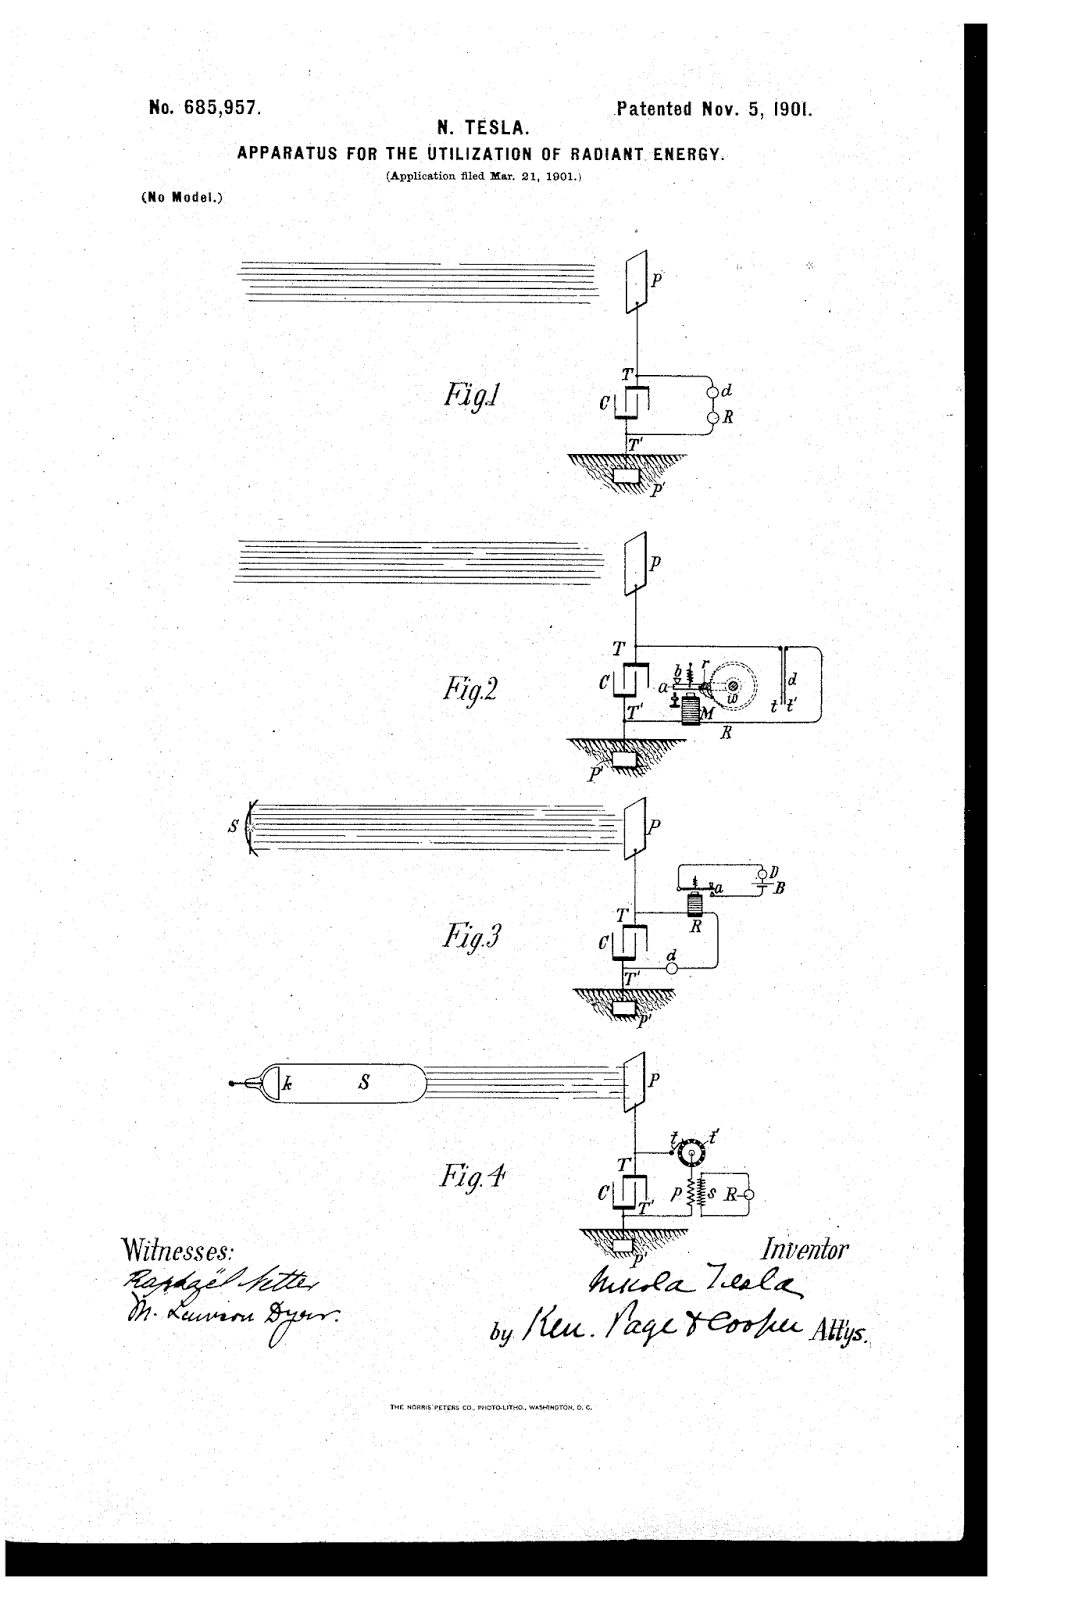 nikola tesla apparatus for the utilization of radiant energy apparatus for the utilization of radiant energy and radiant energy receiver